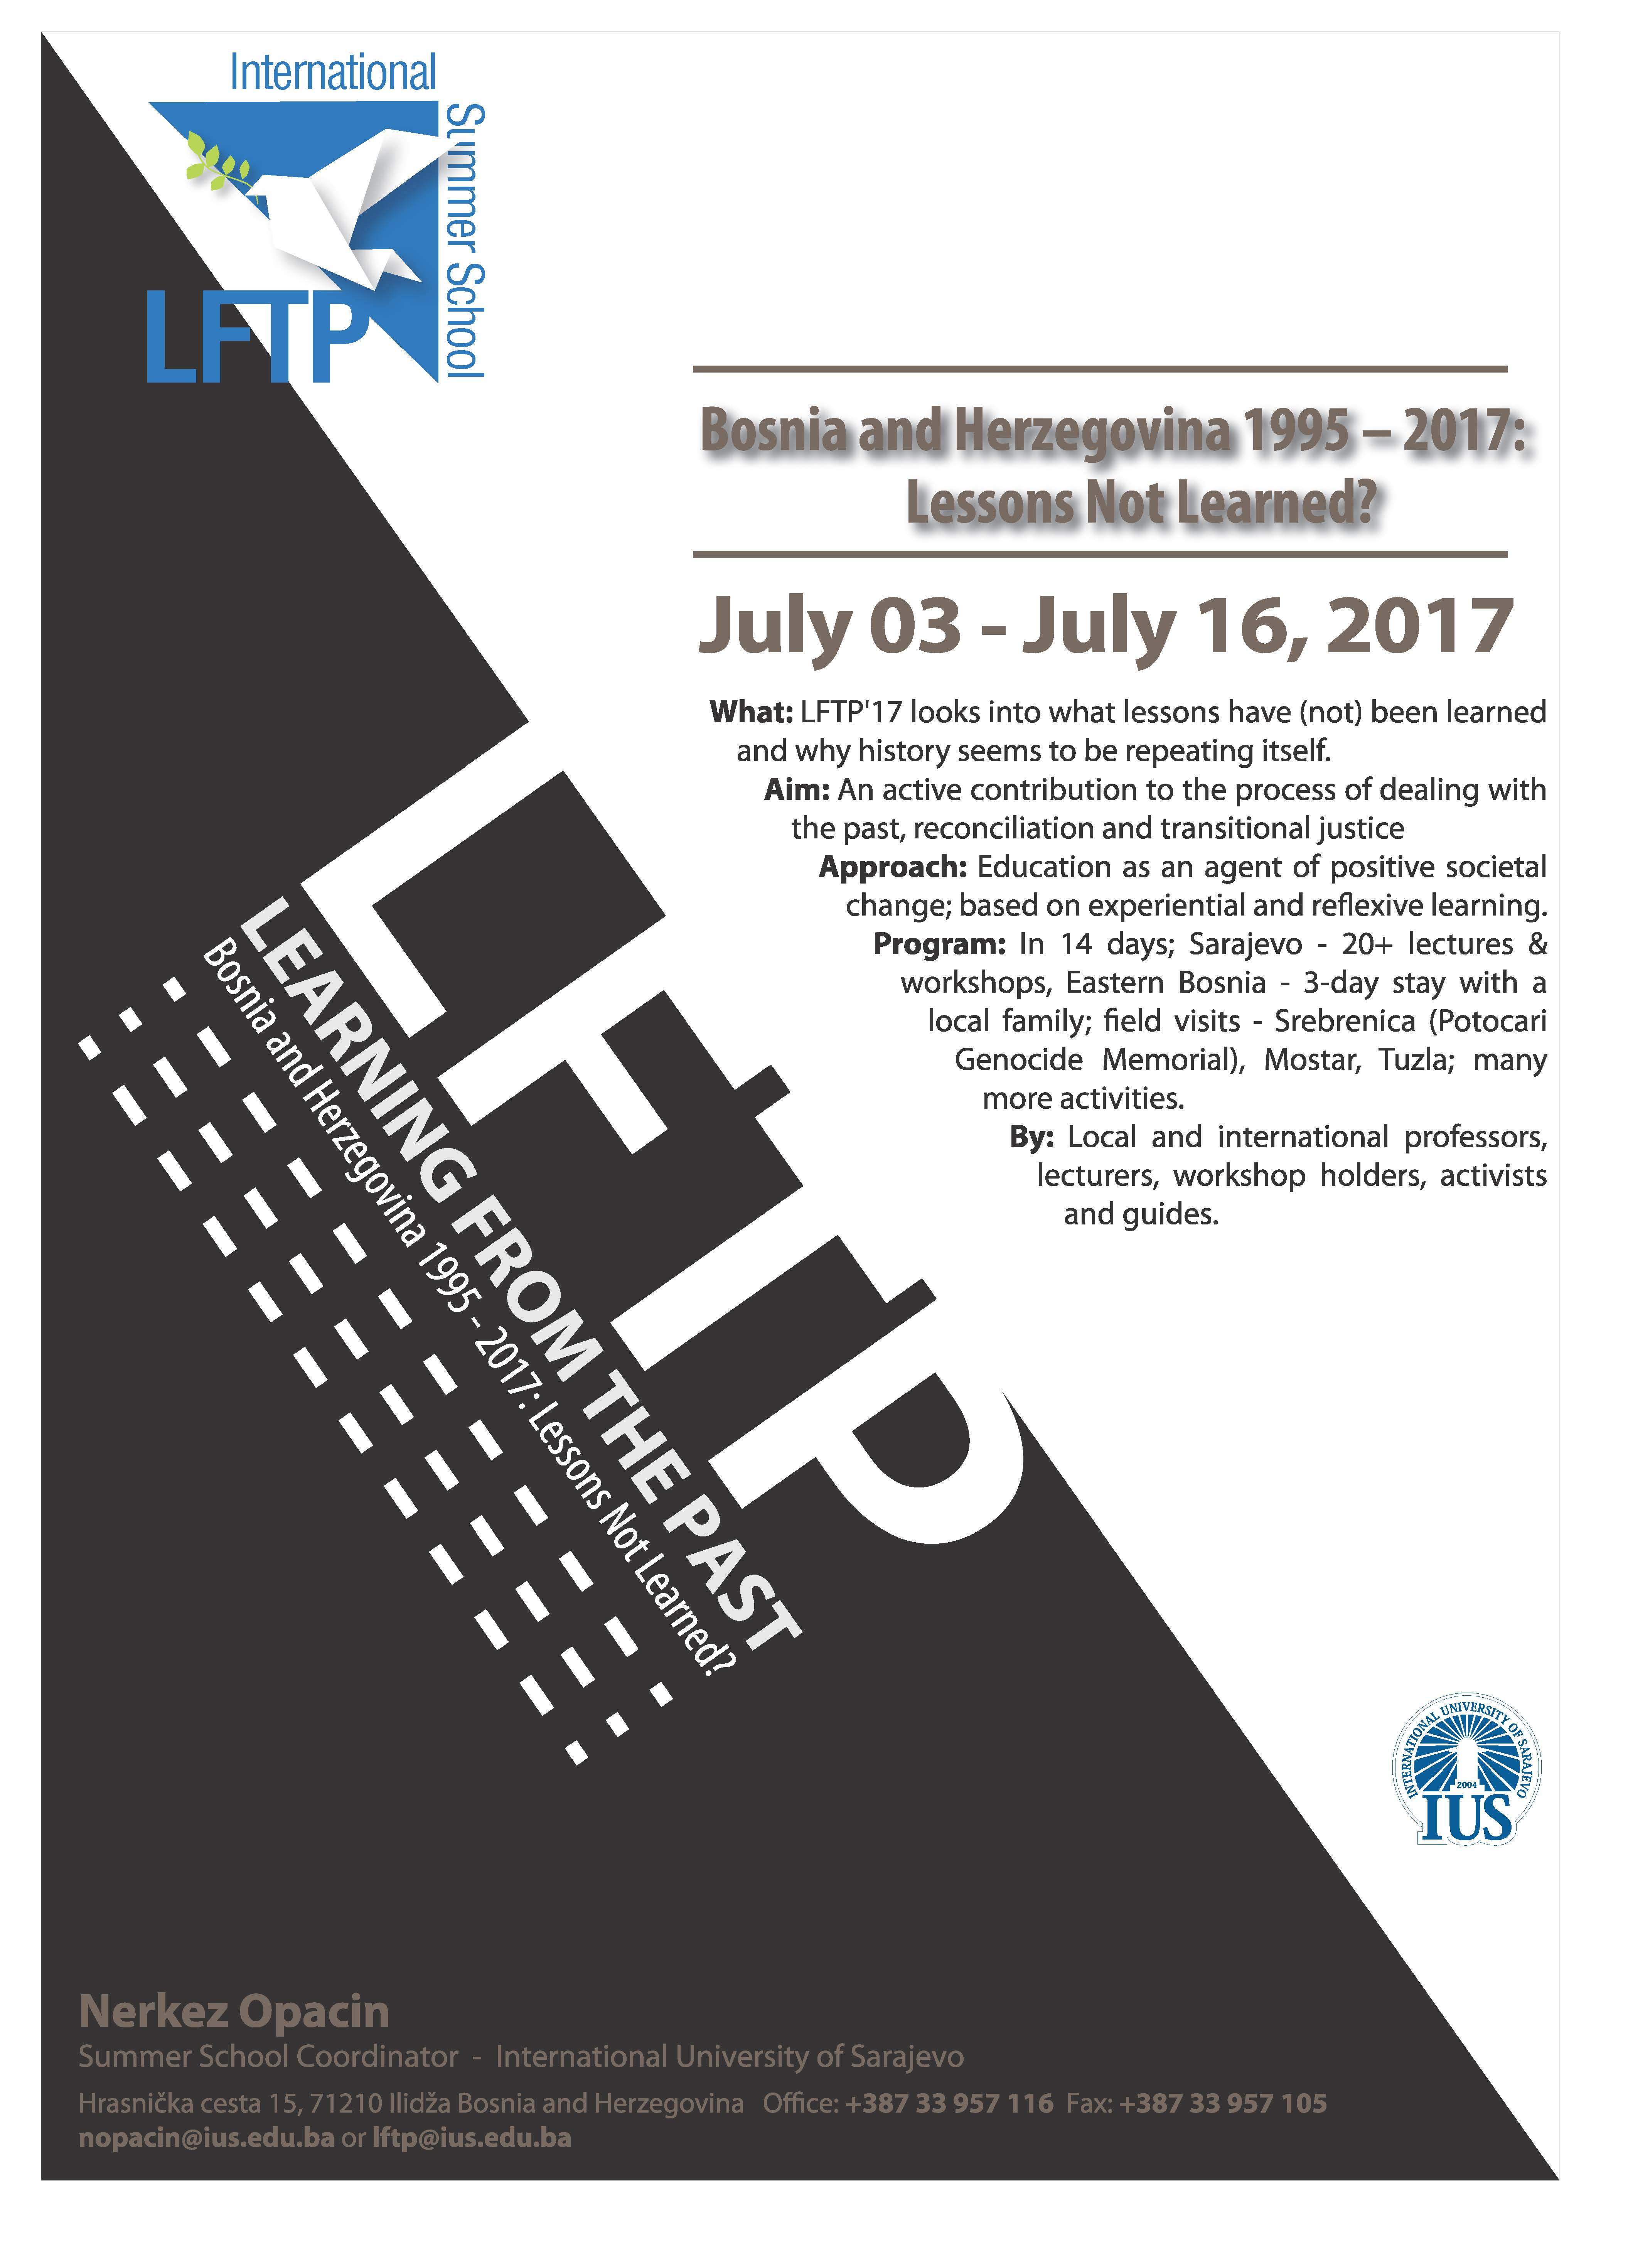 """The 4th international summer school """"Learning from the past – Bosnia and Herzegovina 1995 – 2017: Lessons Not Learned?"""" Sarajevo-Mostar-Srebrenica-Klotjevac"""